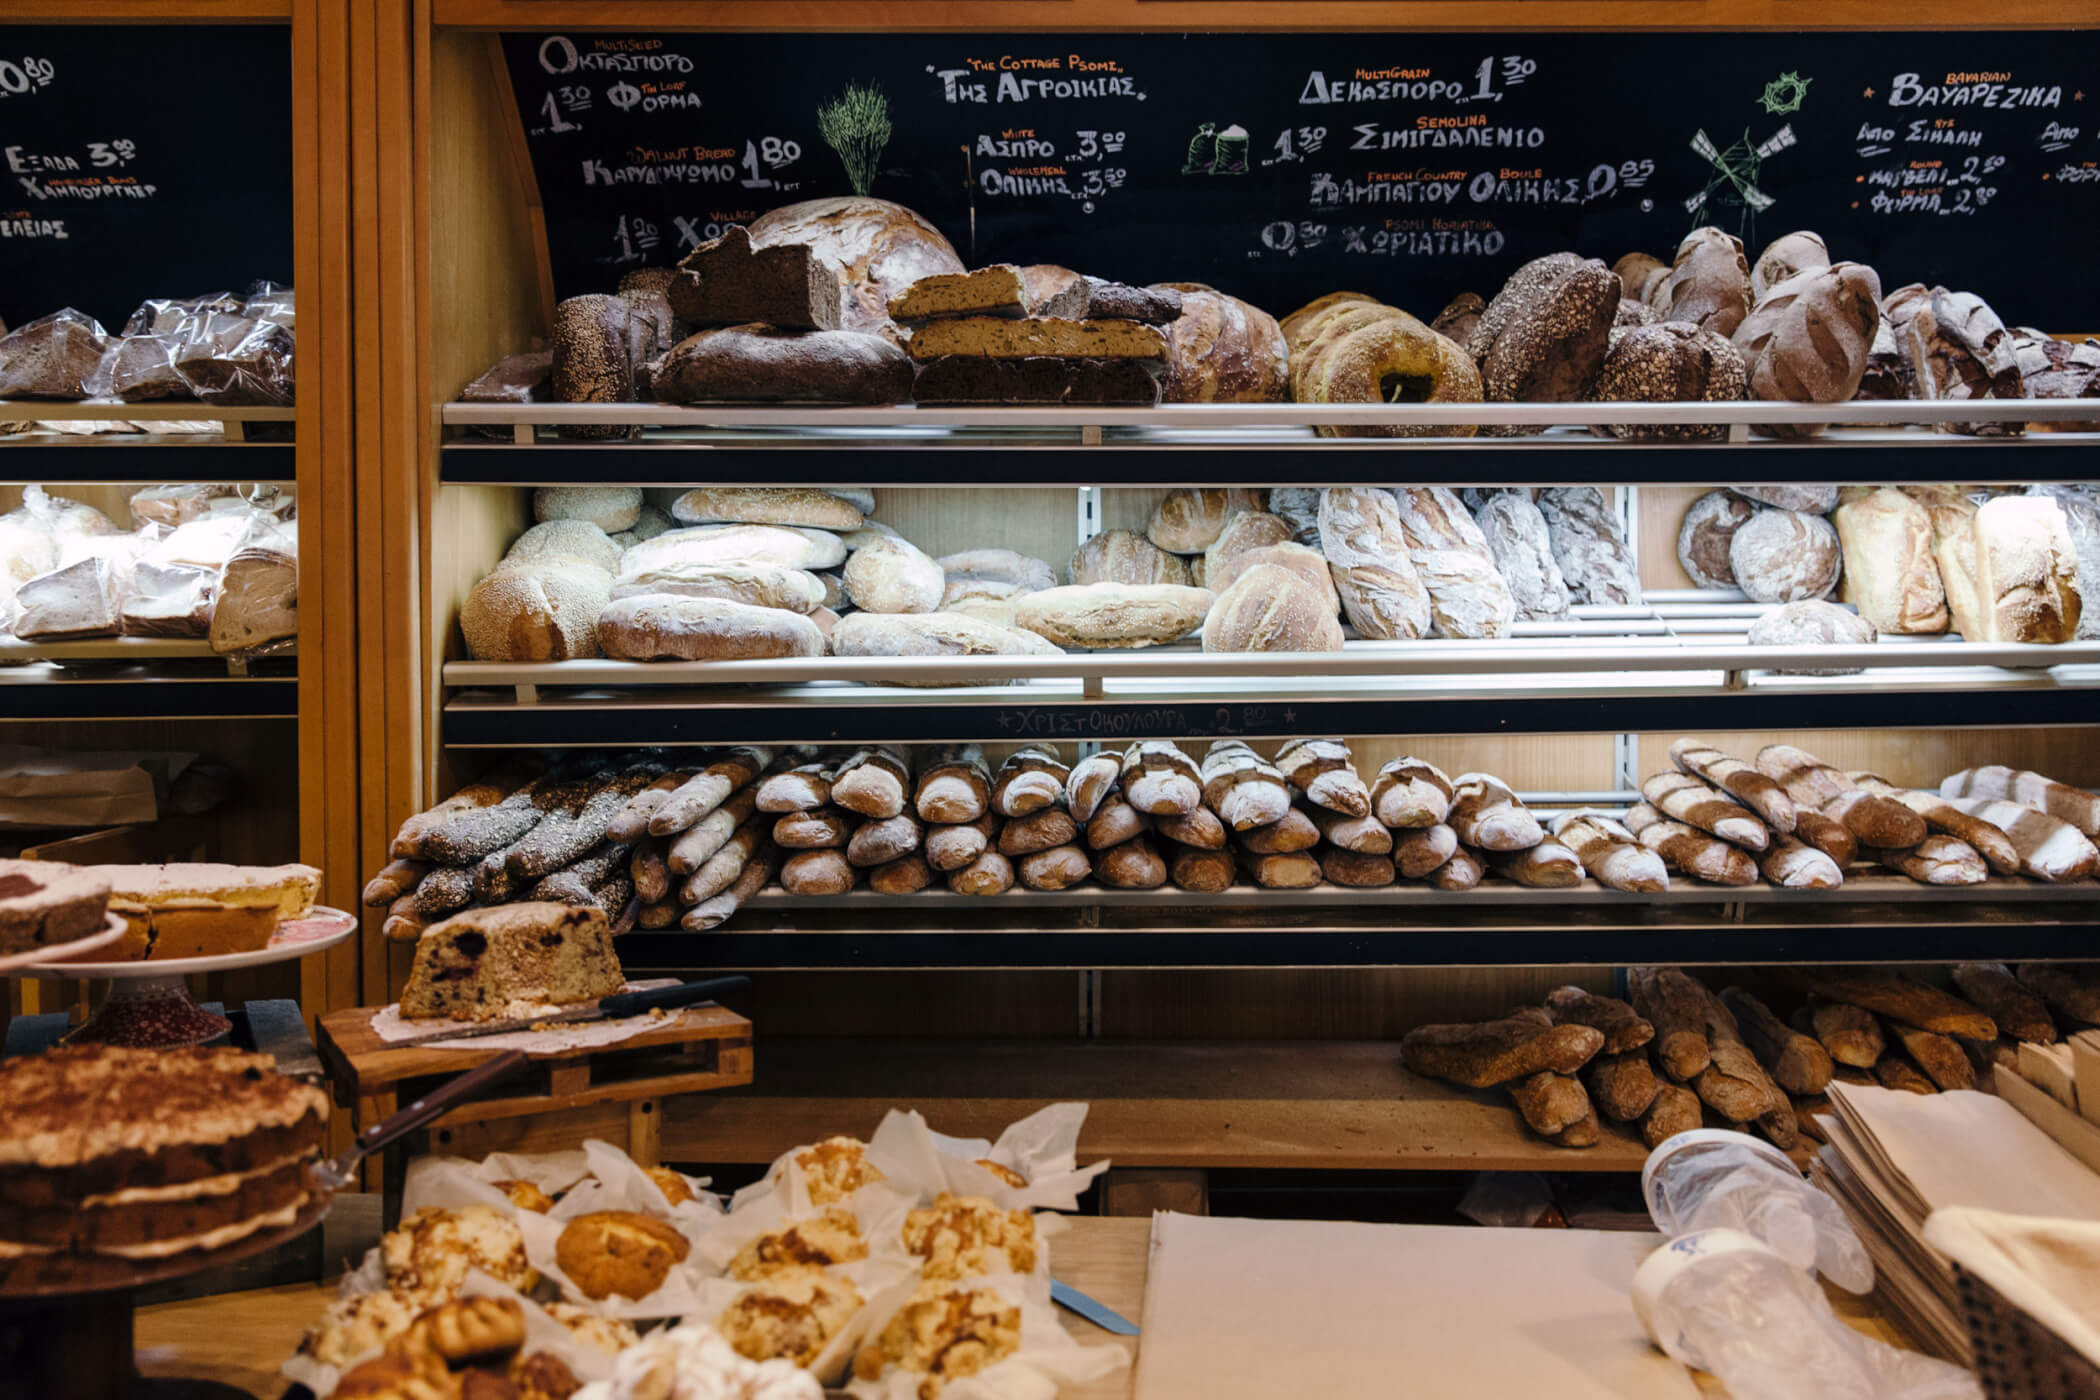 Takis bakery is one of our favorite bakeries in Athens, located just beneath the Acropolis, in Koukaki neighborhood. Source: traveltoathens.eu